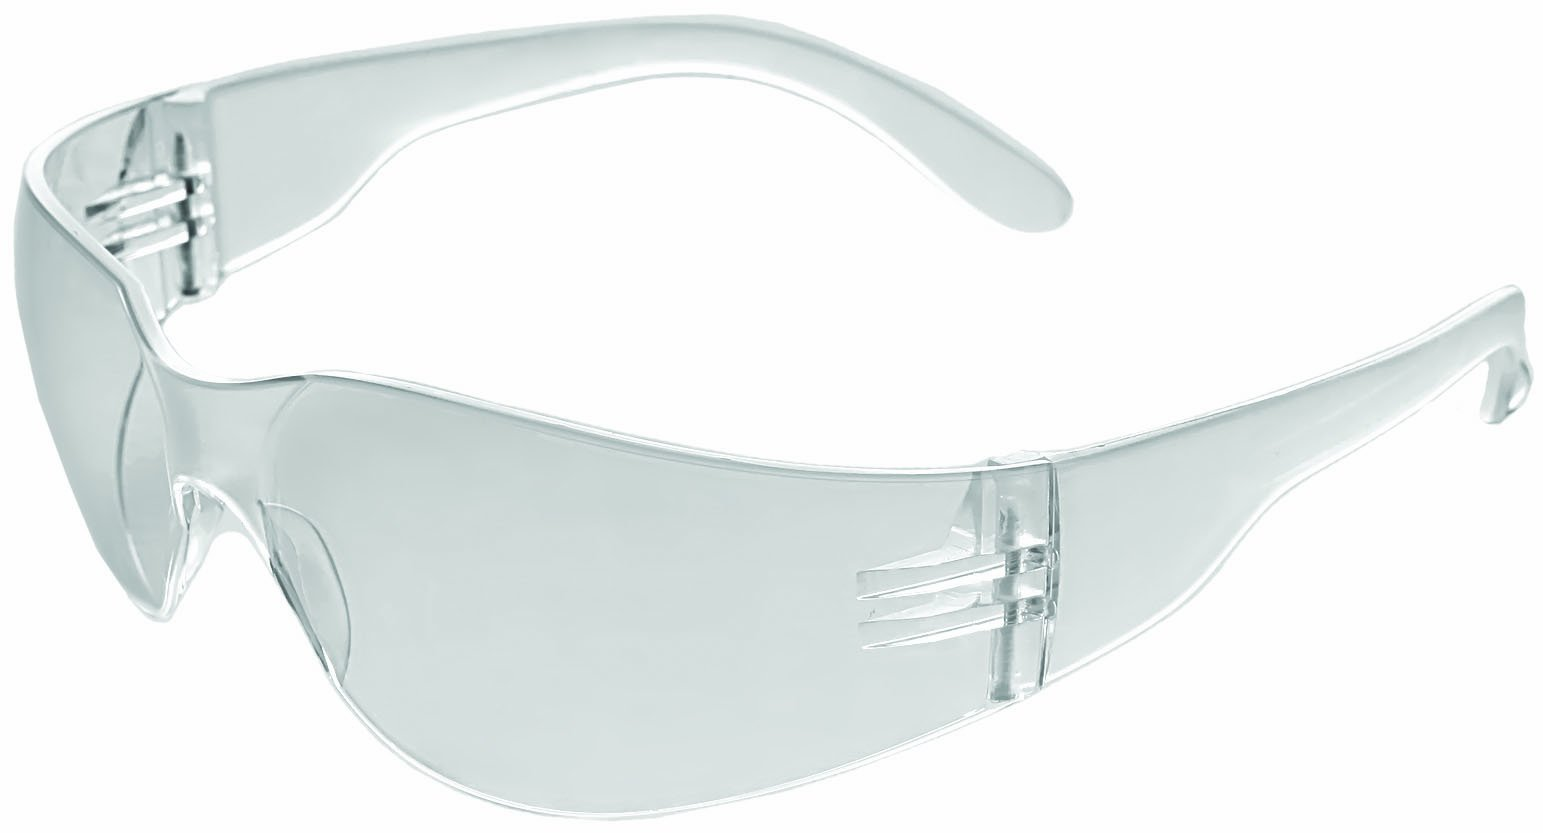 ERB 17987 iProtect Readers Safety Glasses with +1.0 Bifocal Power, Clear Frame with Clear Lens